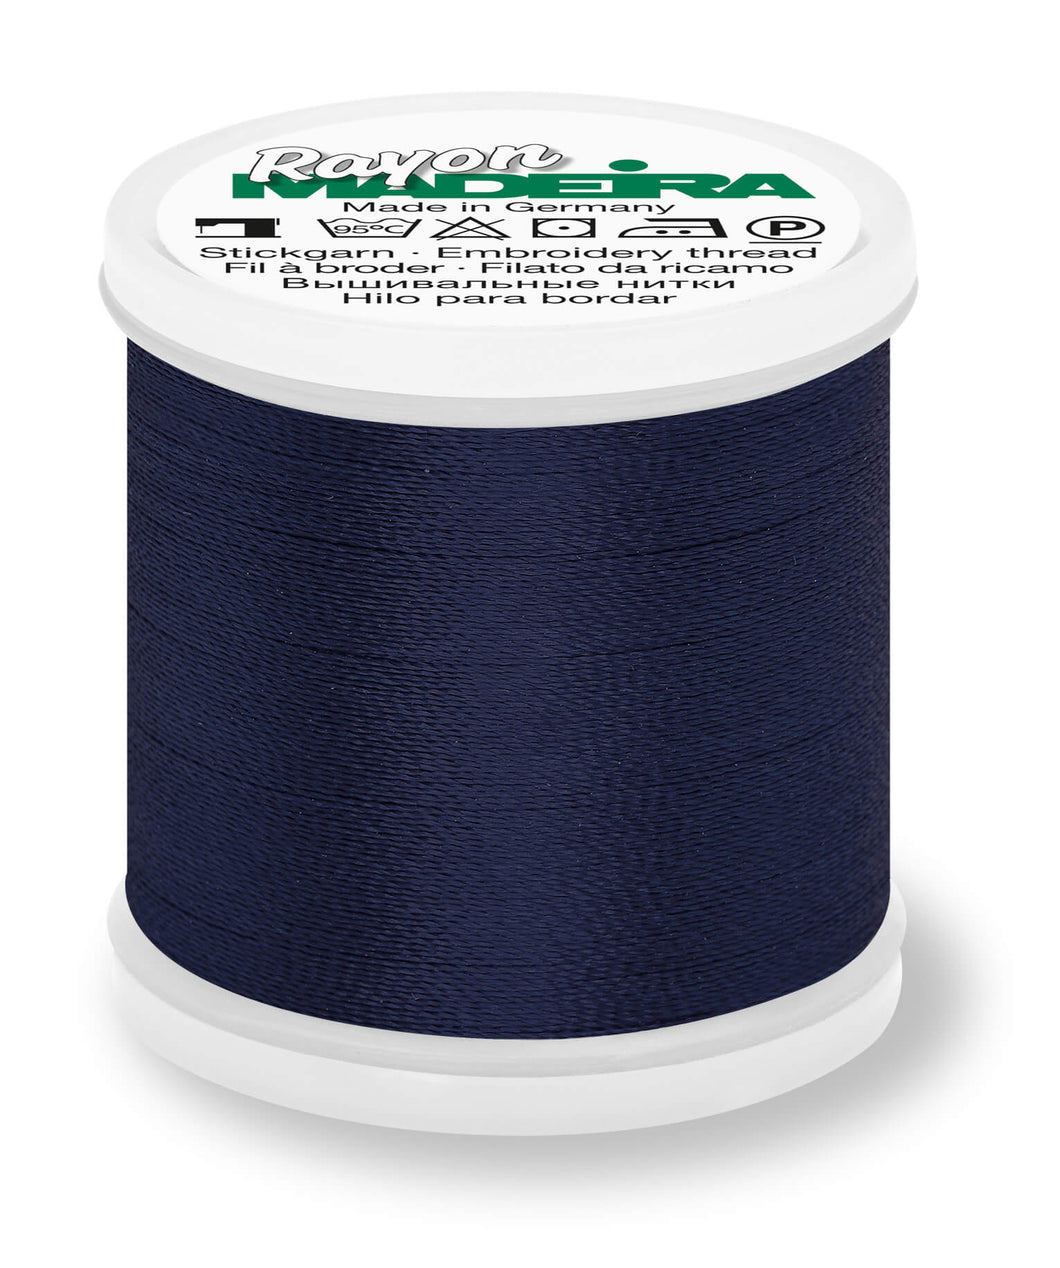 MADEIRA RAYON 40 1000M MACHINE EMBROIDERY THREAD 1044